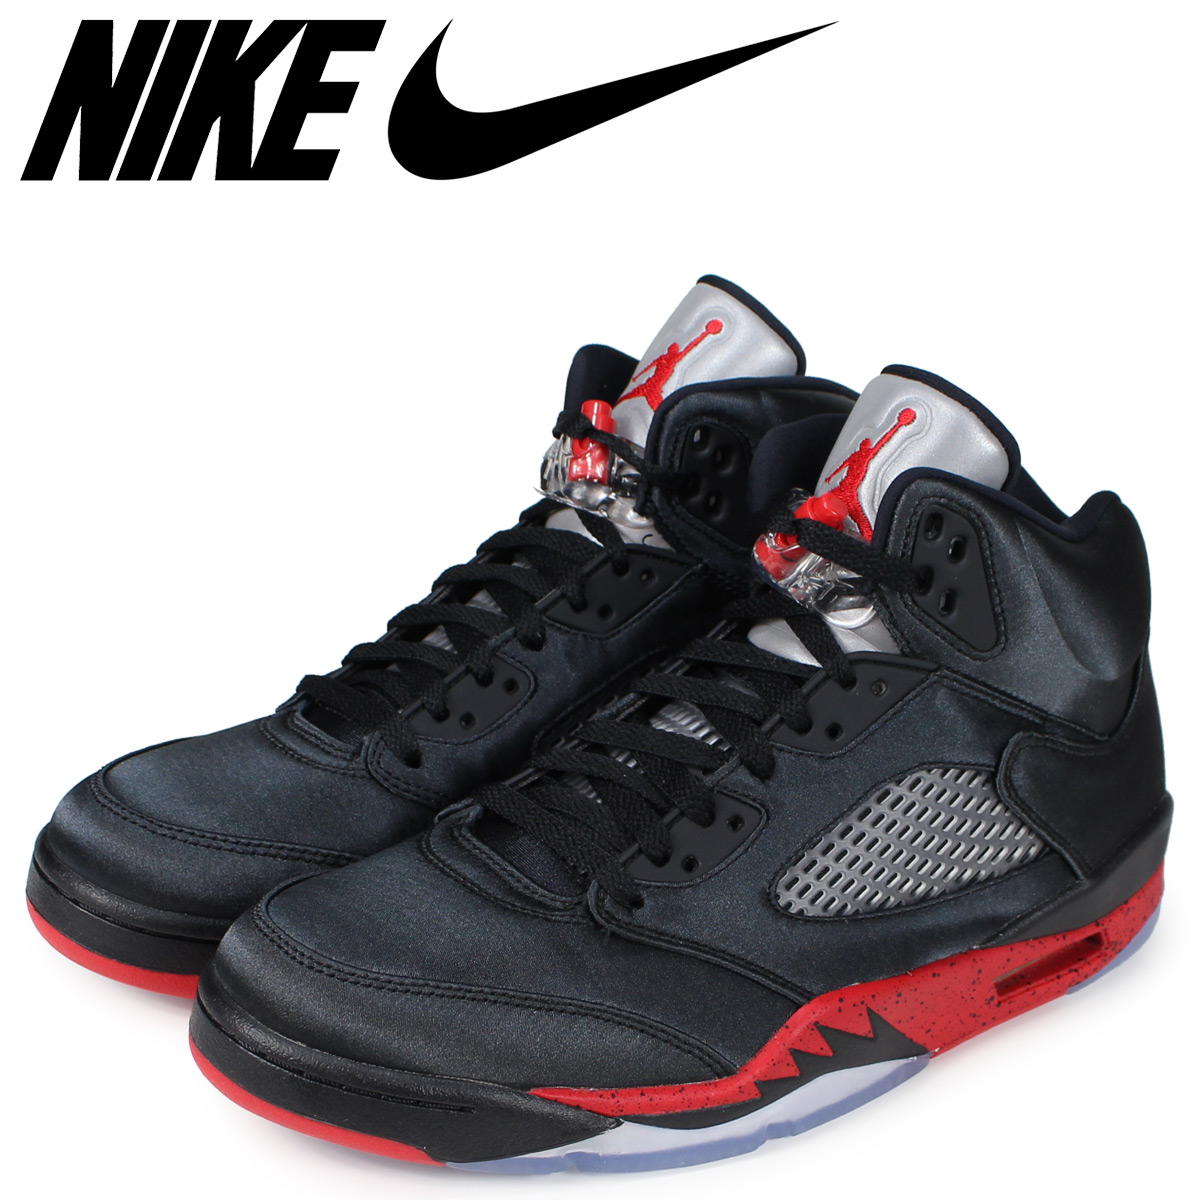 623c877c785a  brand NIKE getting high popularity from sneakers freak .